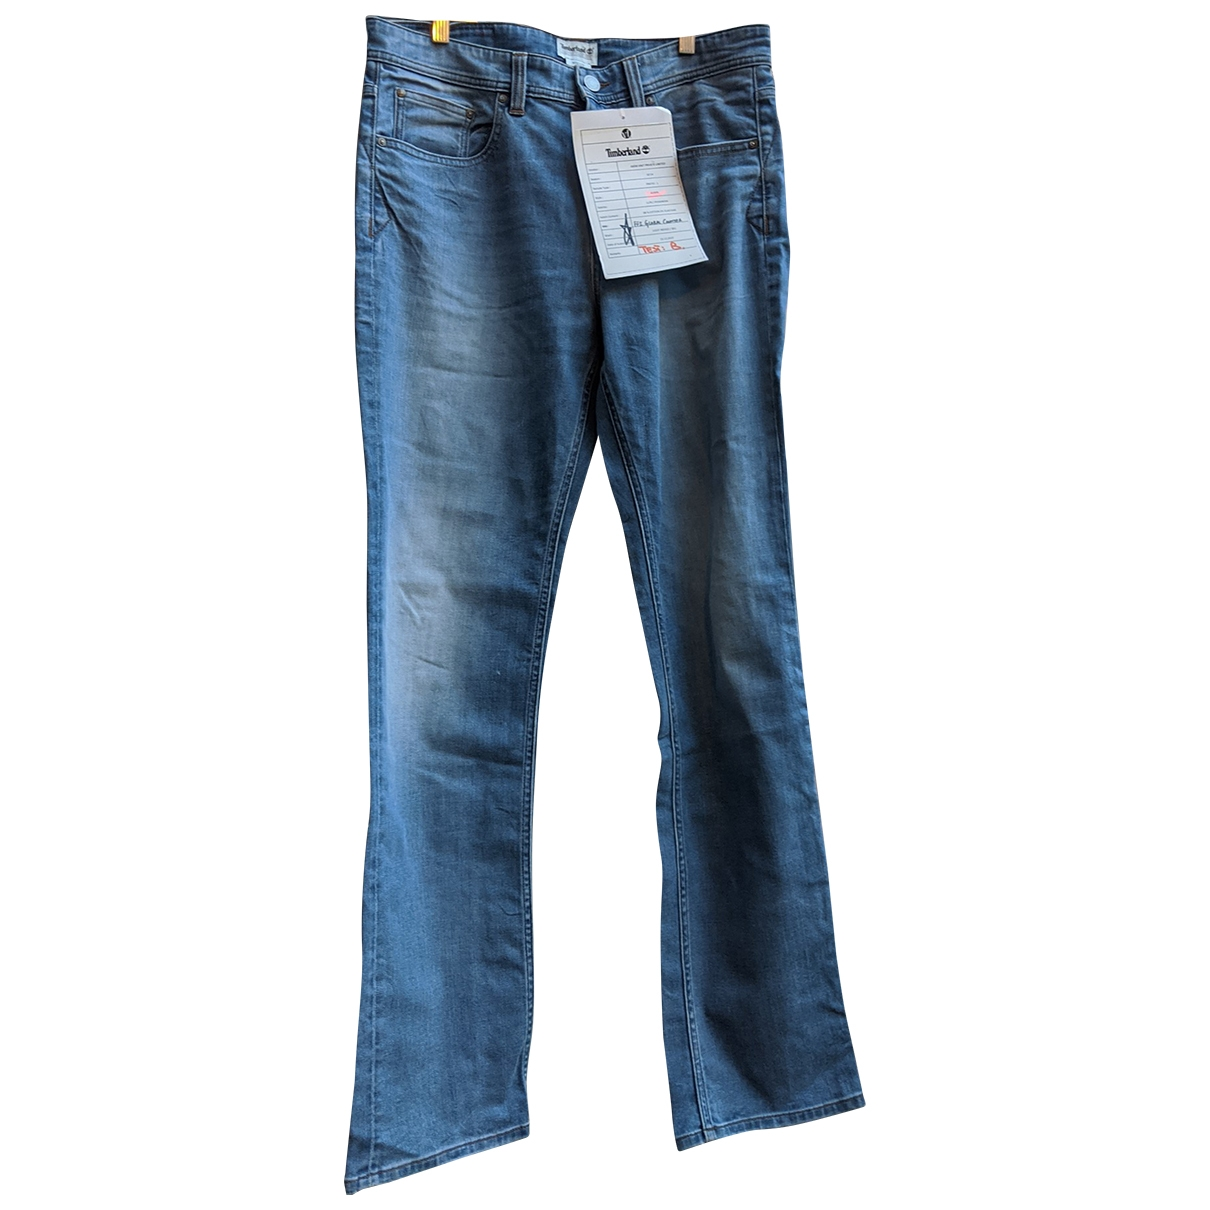 Timberland \N Blue Denim - Jeans Trousers for Men 54 IT